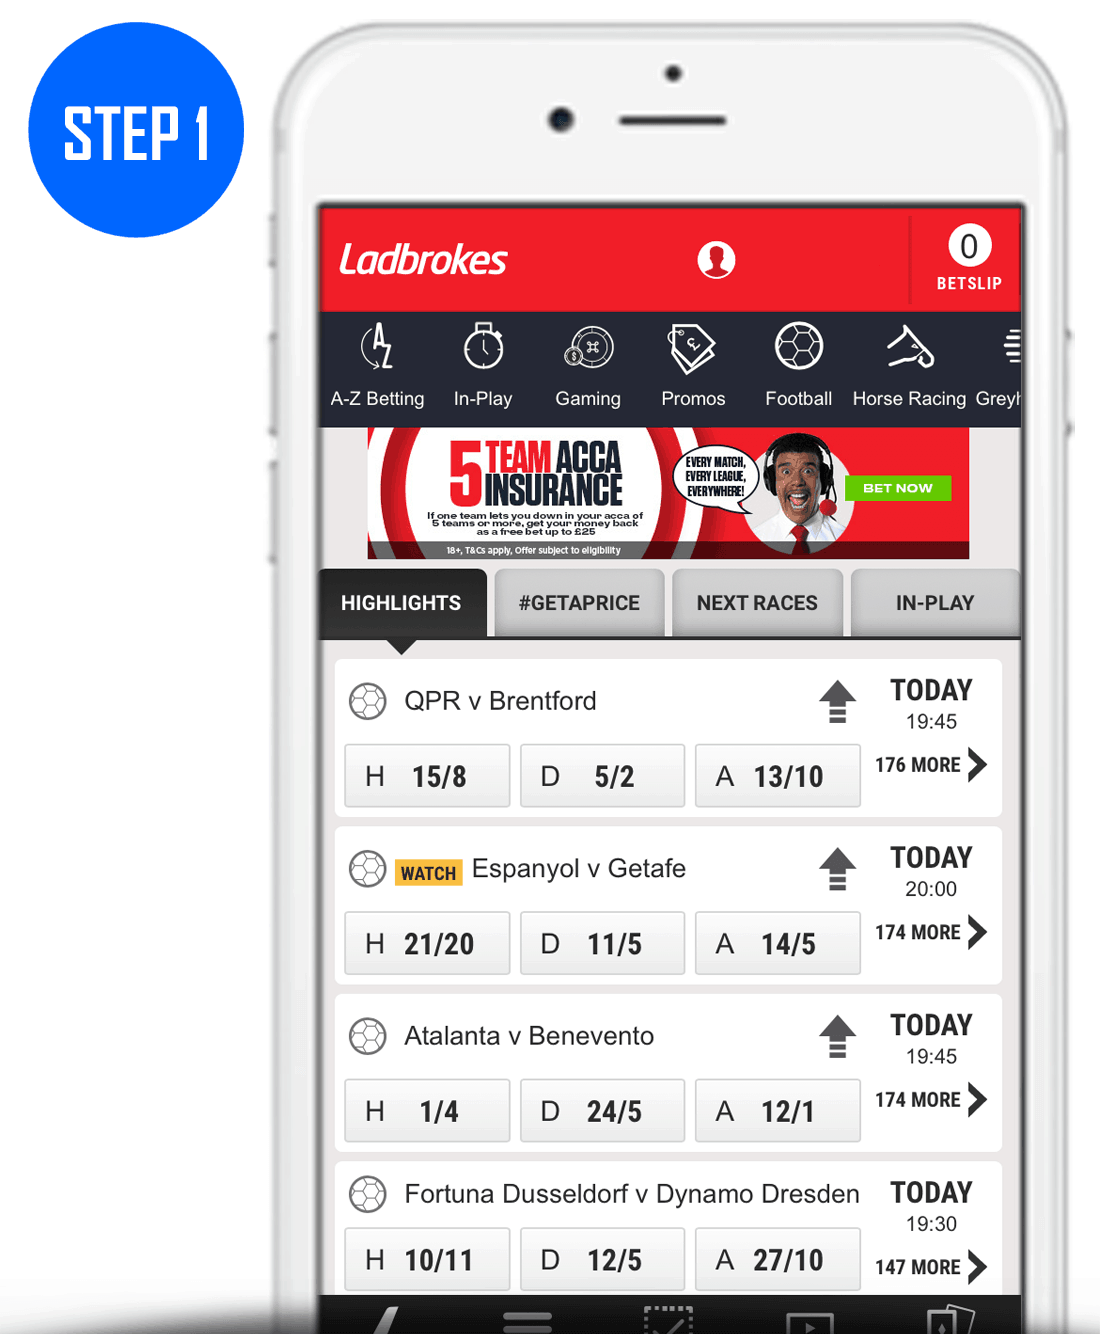 How To Claim Your Ladbrokes Grid Card Step 1